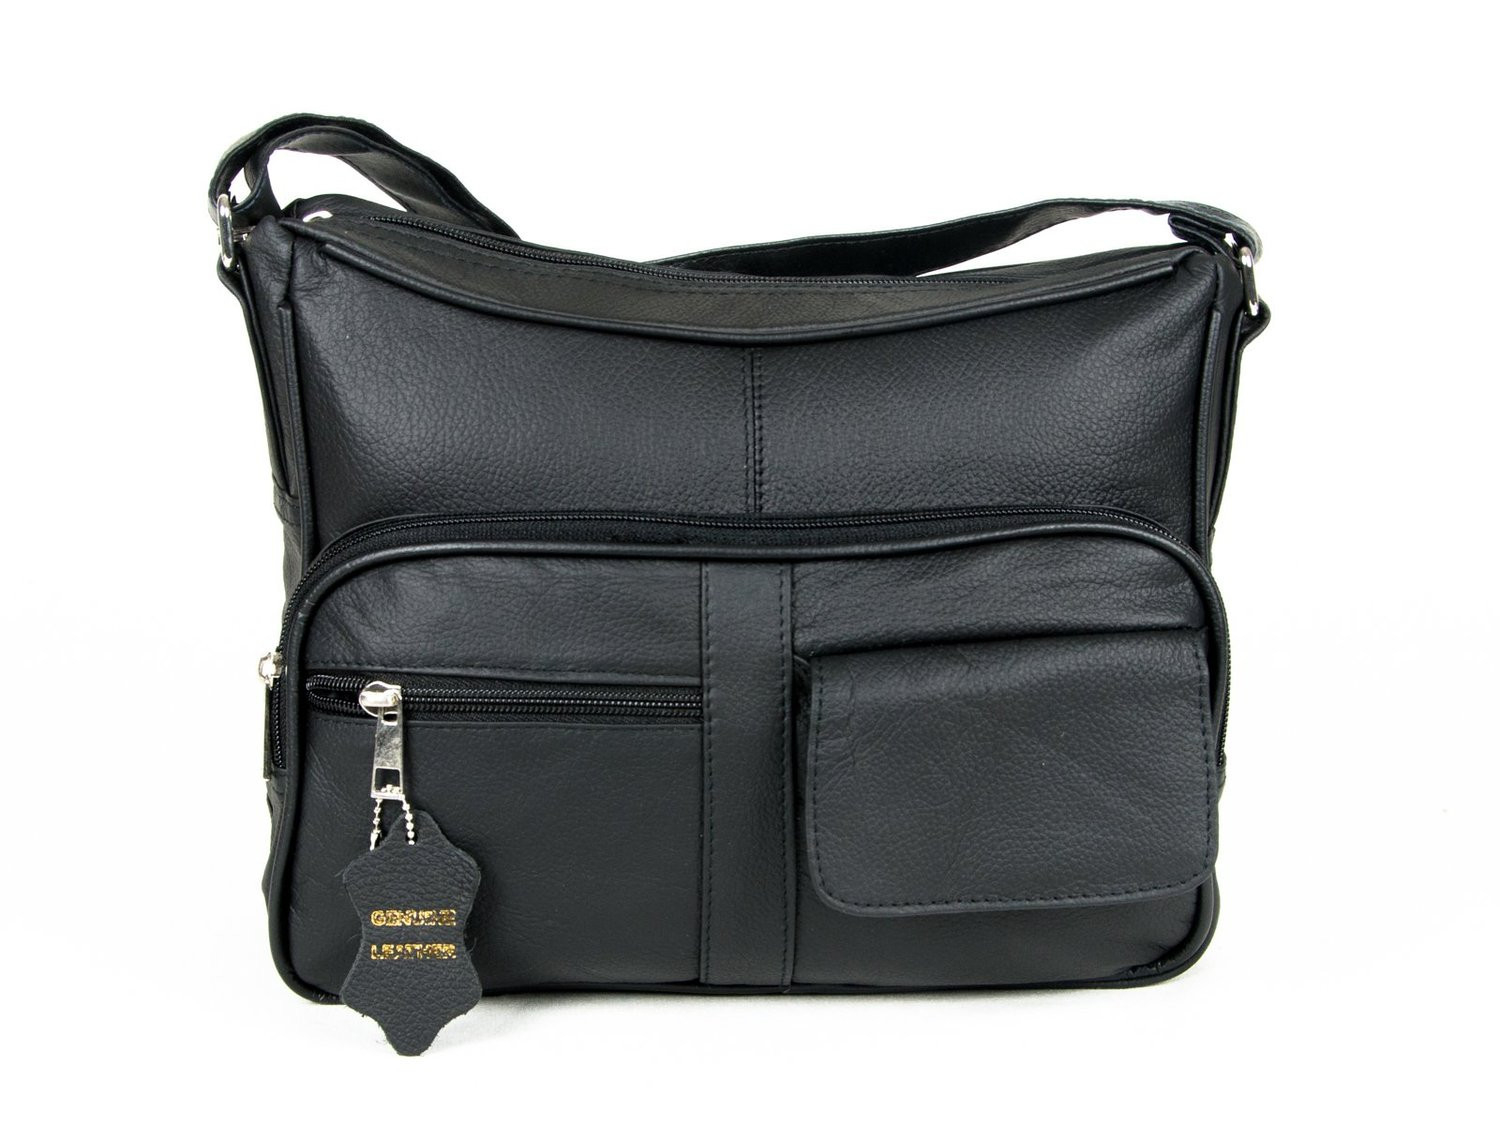 AFONiE Soft Leather Purse - Black photo